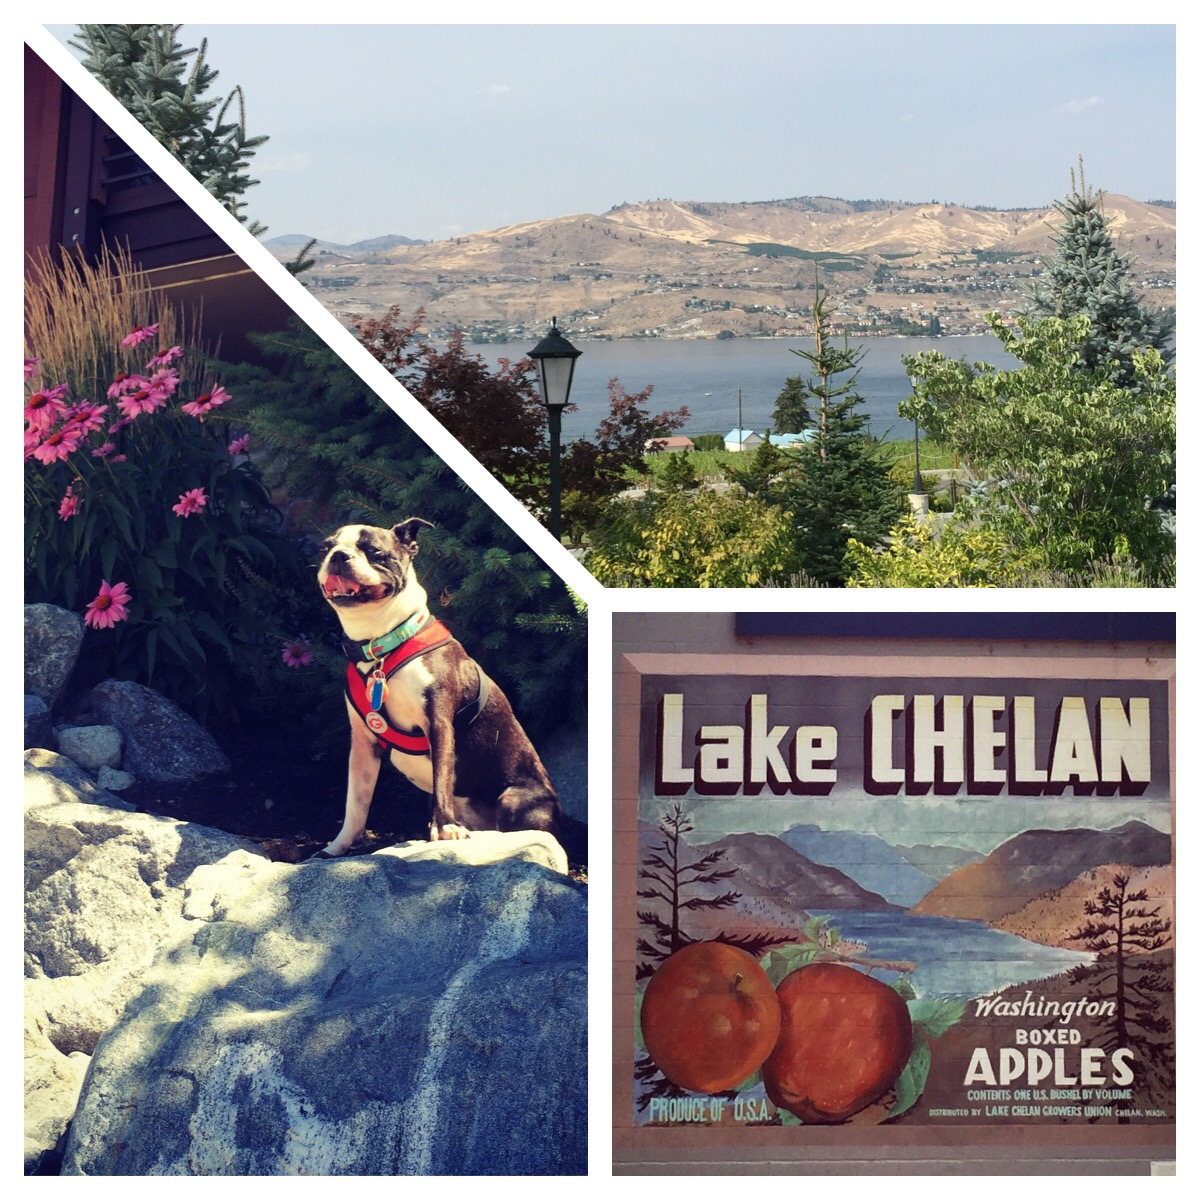 A Taste of Basil's time on Lake Chelan